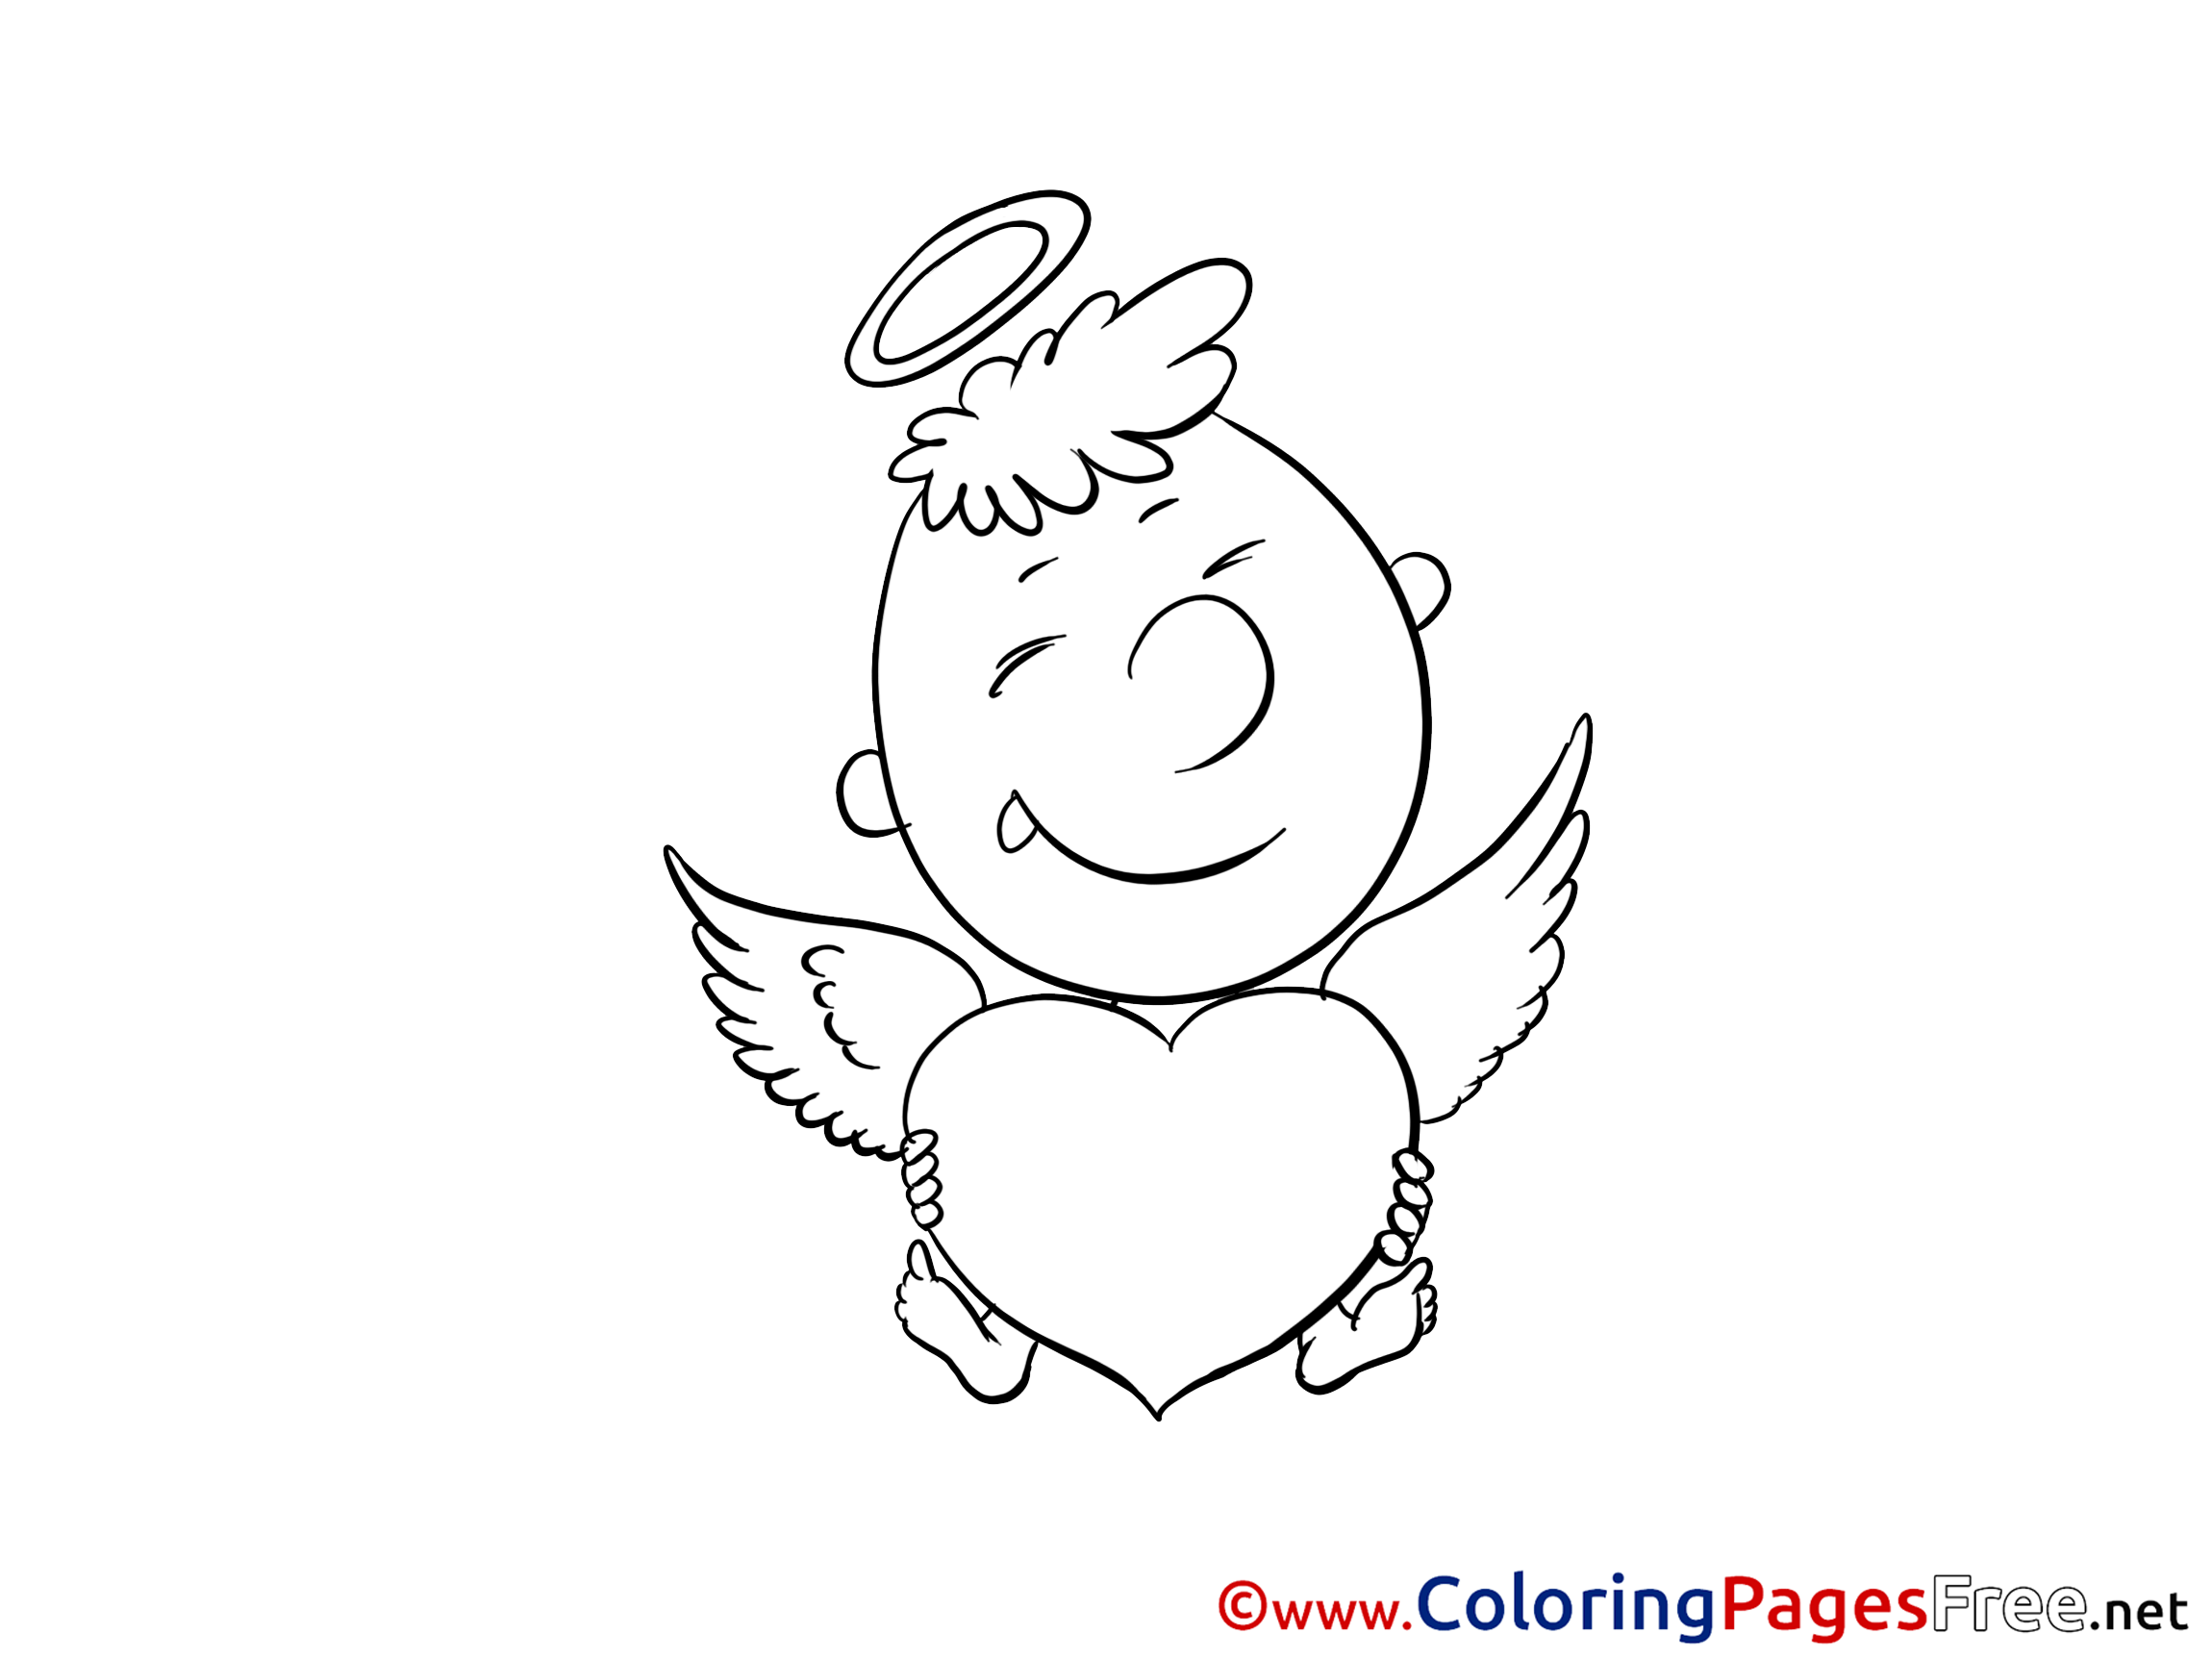 Valentine's Day coloring page - Cupid with Bow | 1725x2300